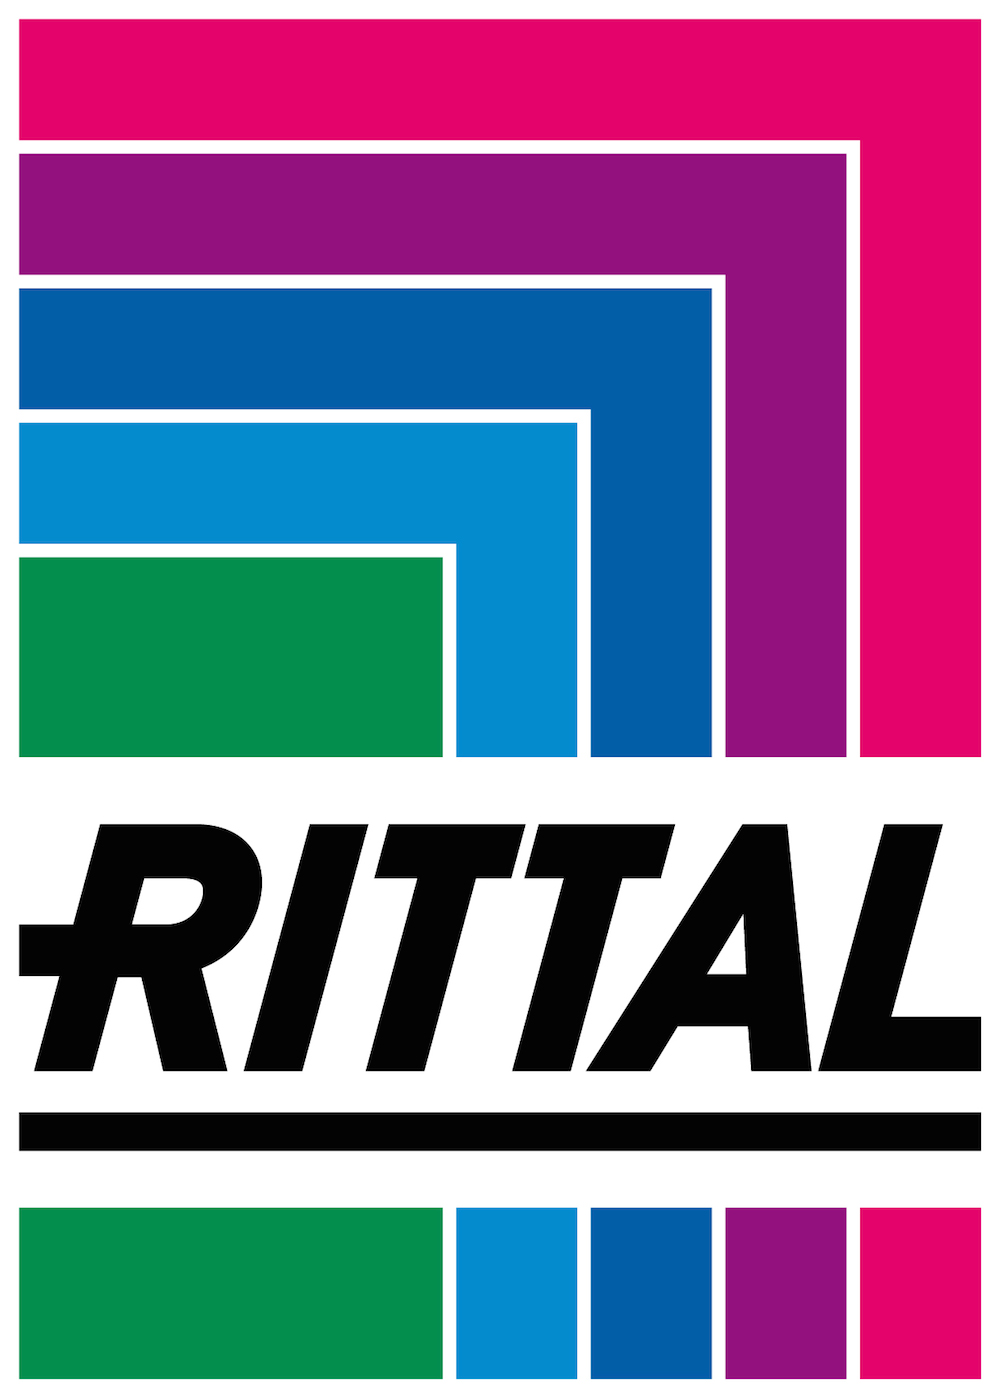 Rittal - Airport Climate Control and IT Infrastructure